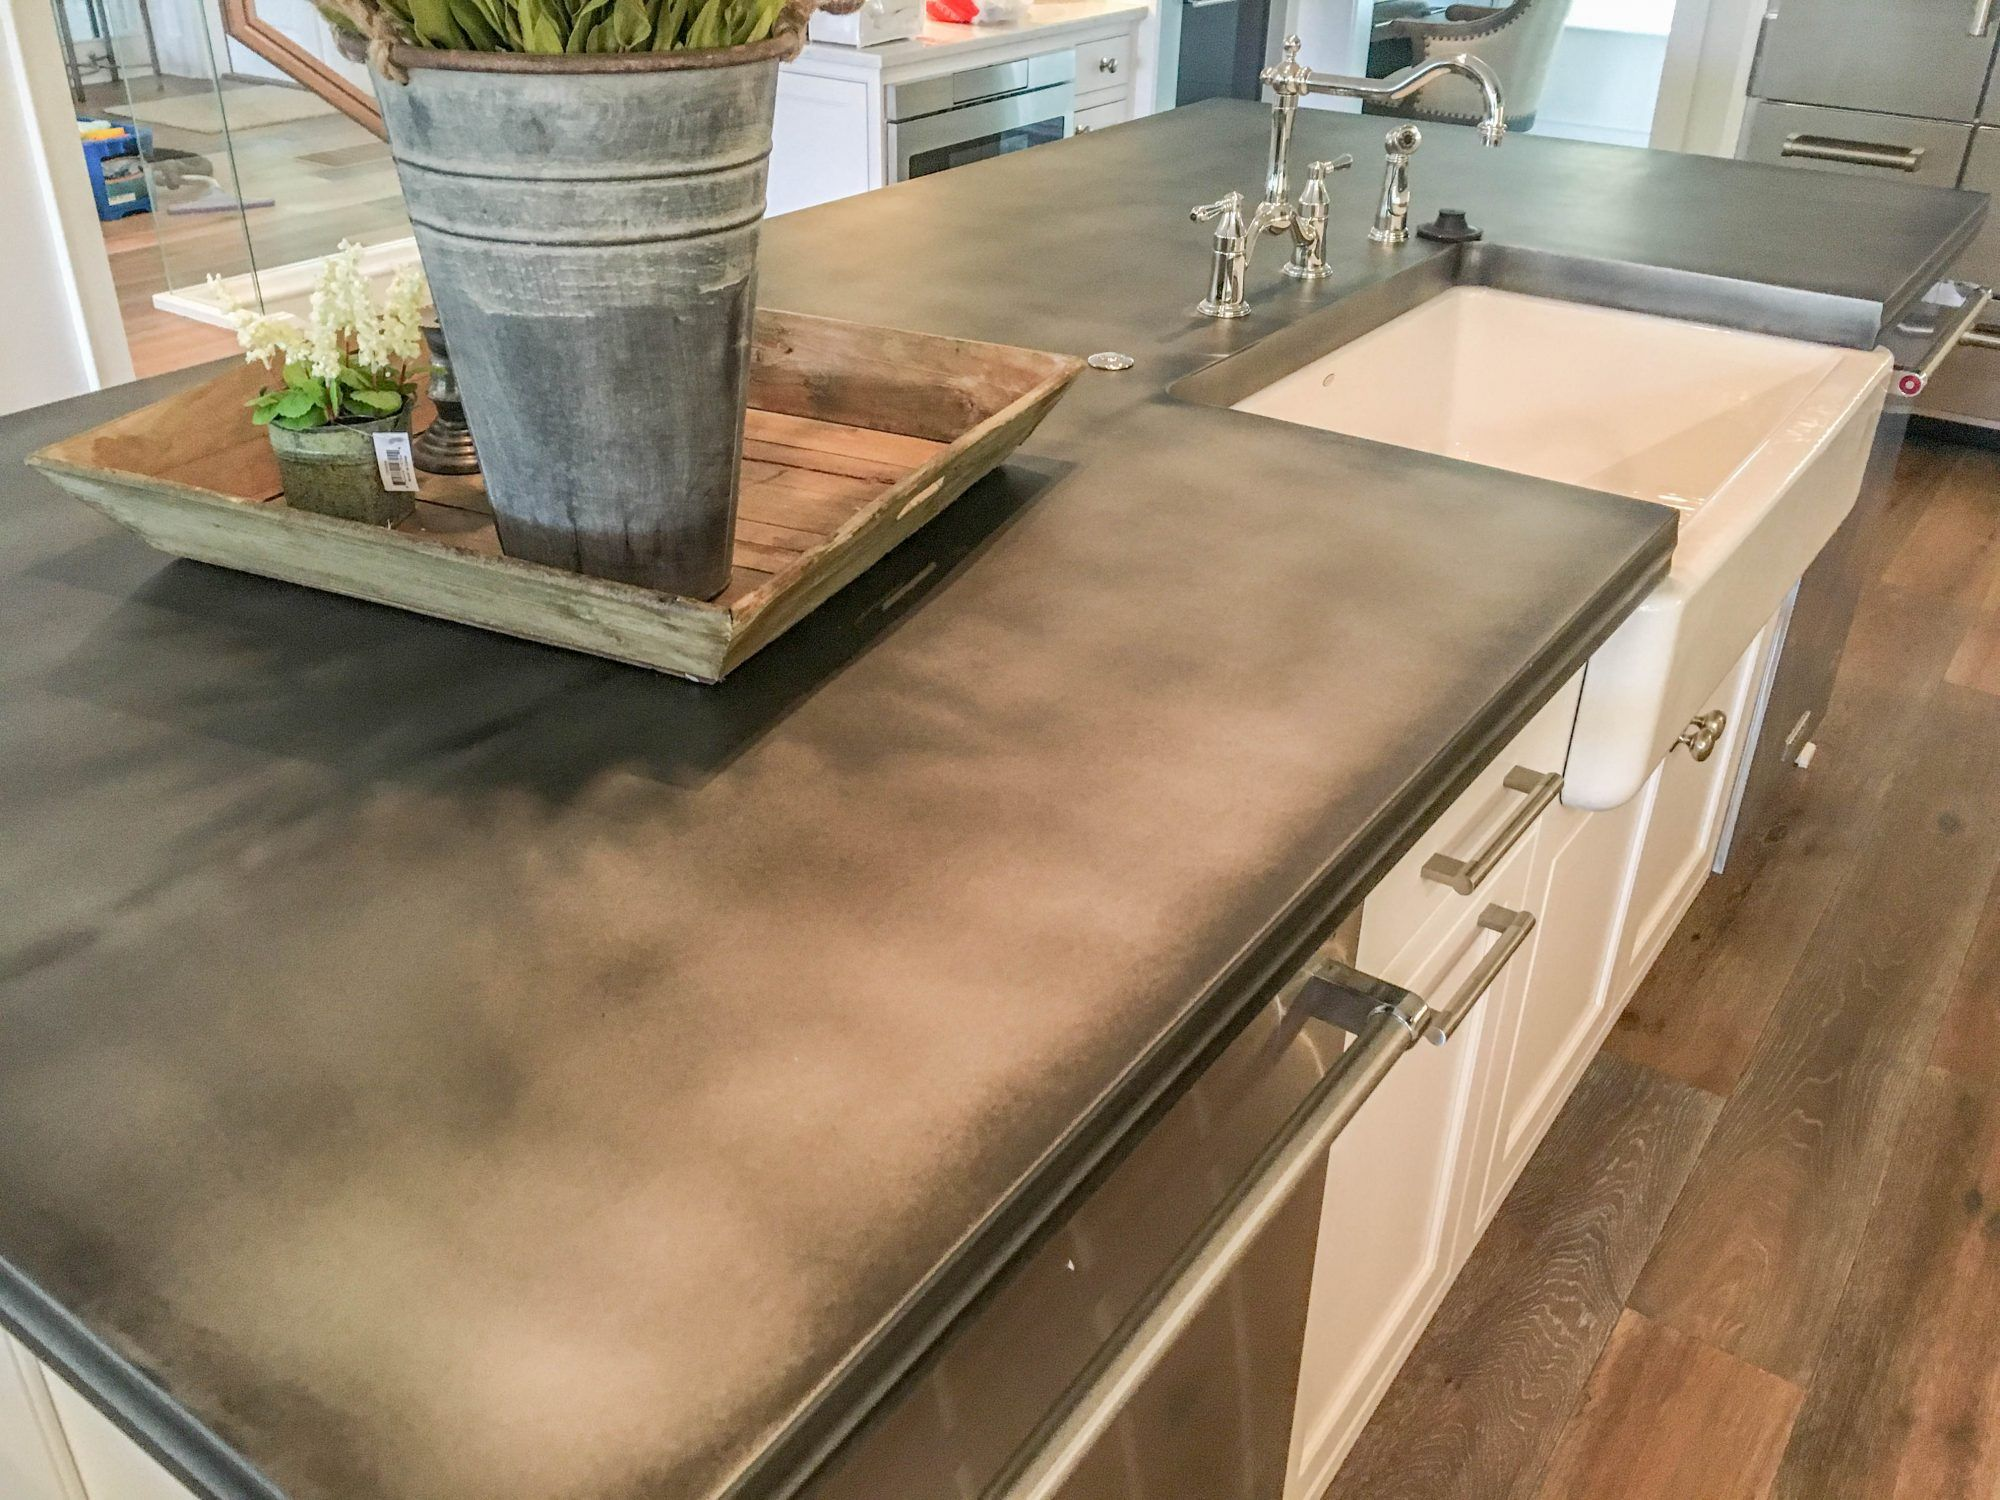 Double The Island Double The Fun Standard Kitchen Bath Standard Kitchen Bath Kitchen And Bath Kitchen Gallery Kitchen